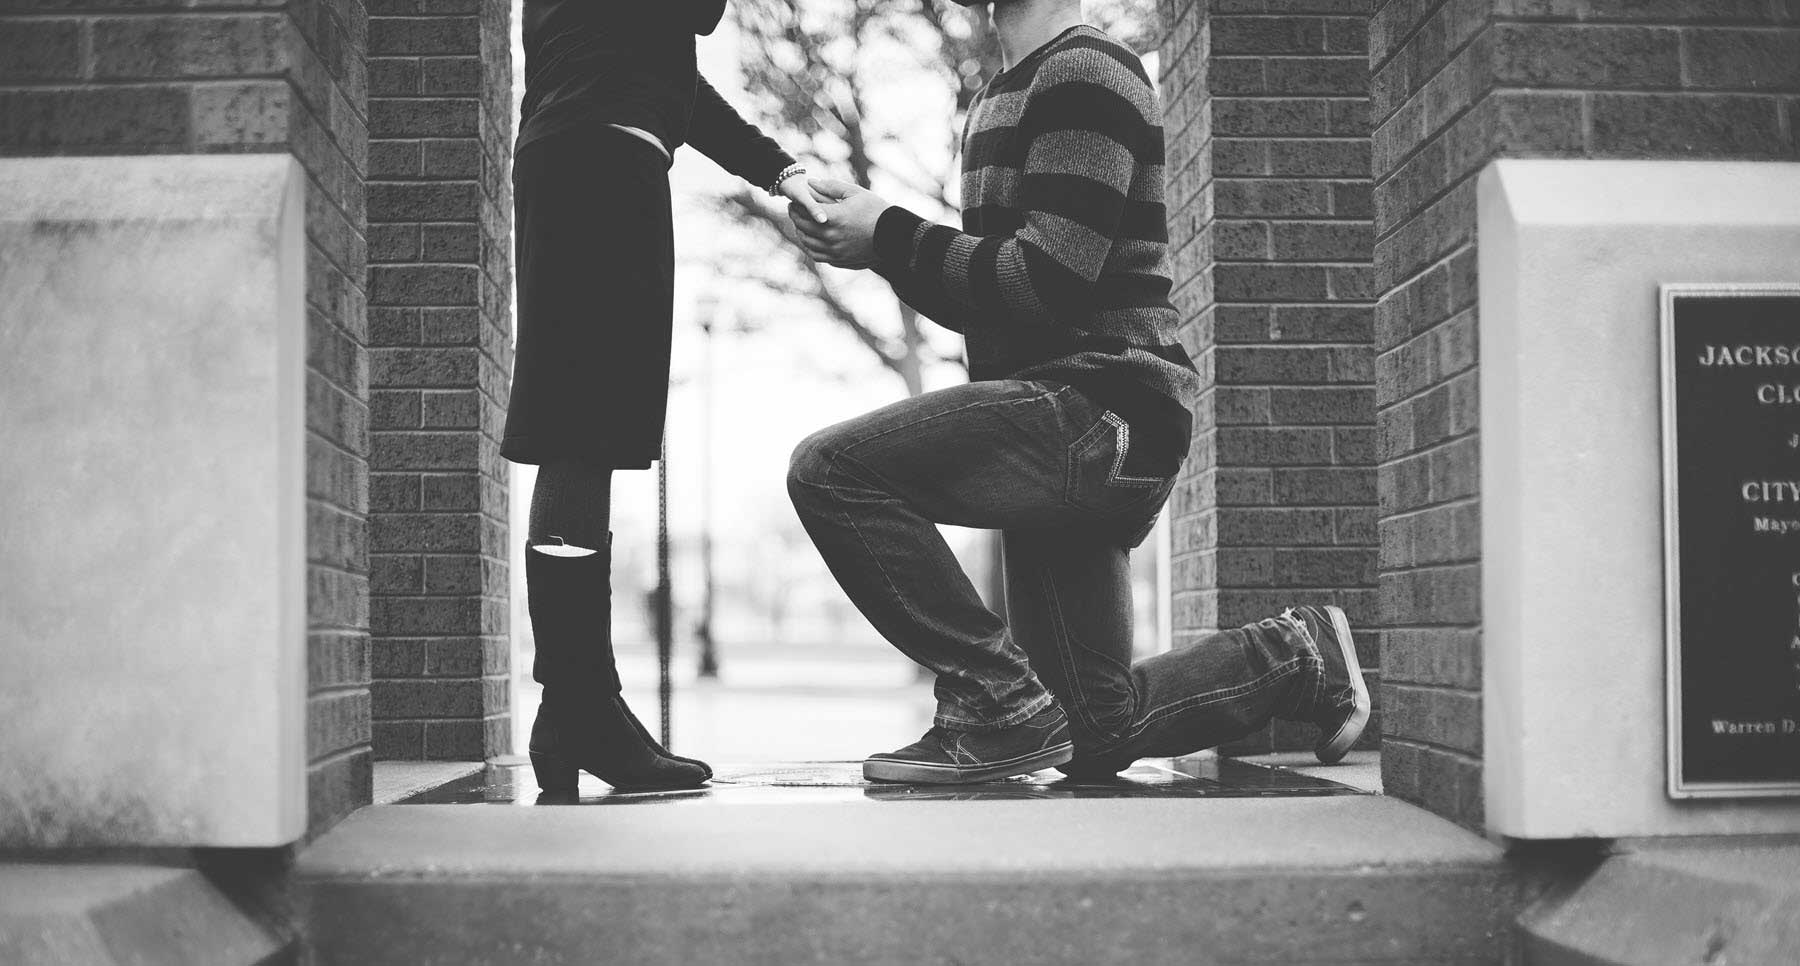 picking-right-partner-for-marriage thehopeline resources